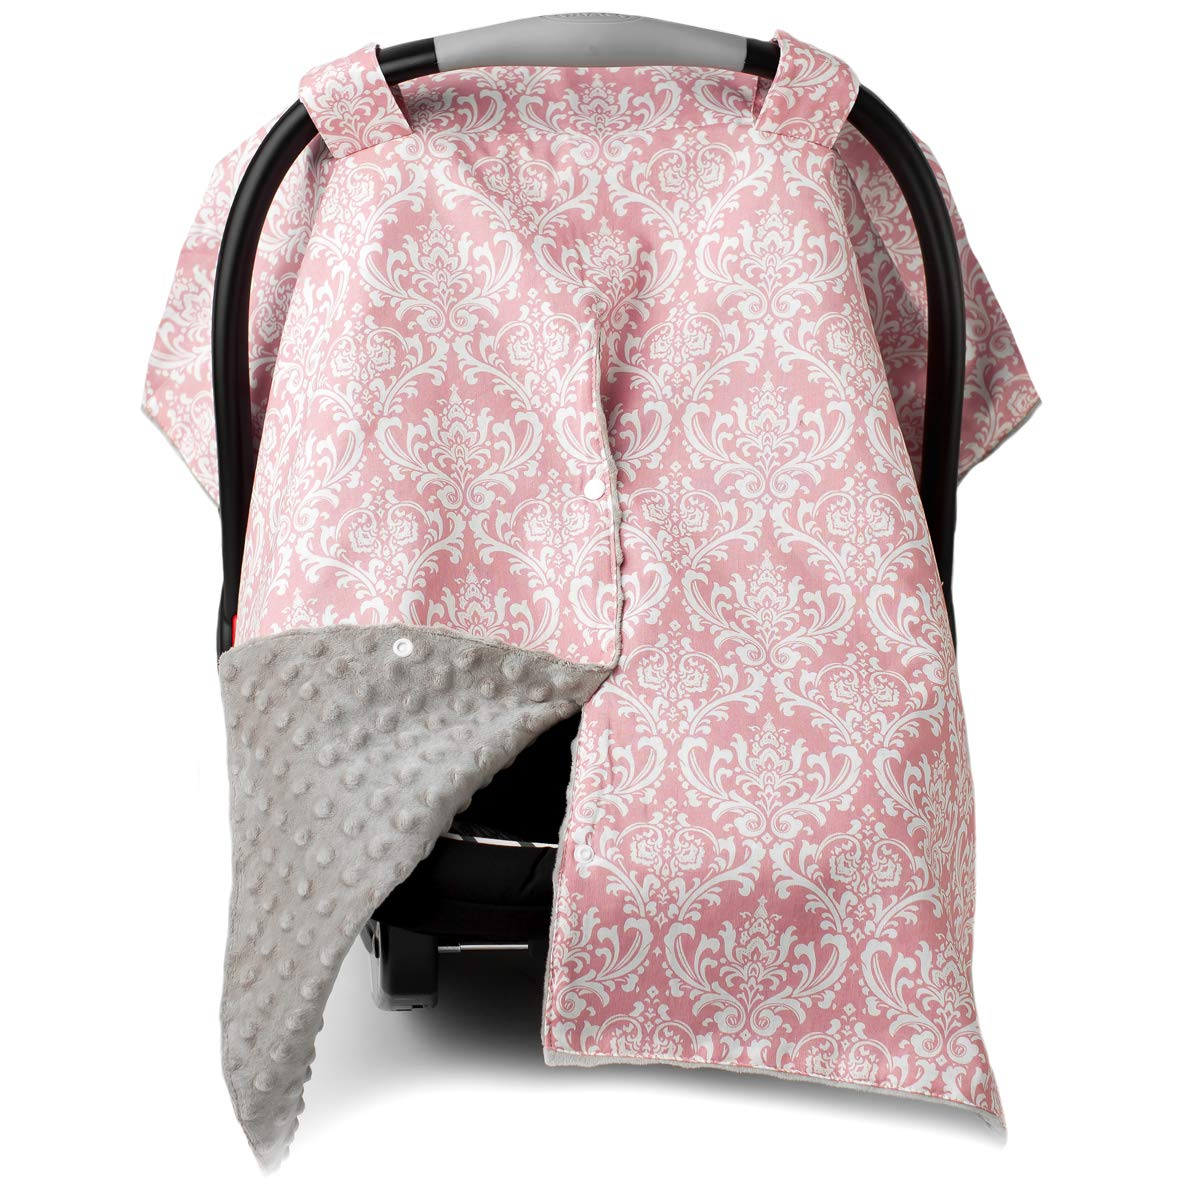 2 in 1 Carseat Canopy and Nursing Cover Up with Peekaboo Opening   Large Infant Car Seat Canopy for Girl   Best Baby Shower Gift for Breastfeeding Moms   Pink Damask Pattern with Champagne Minky